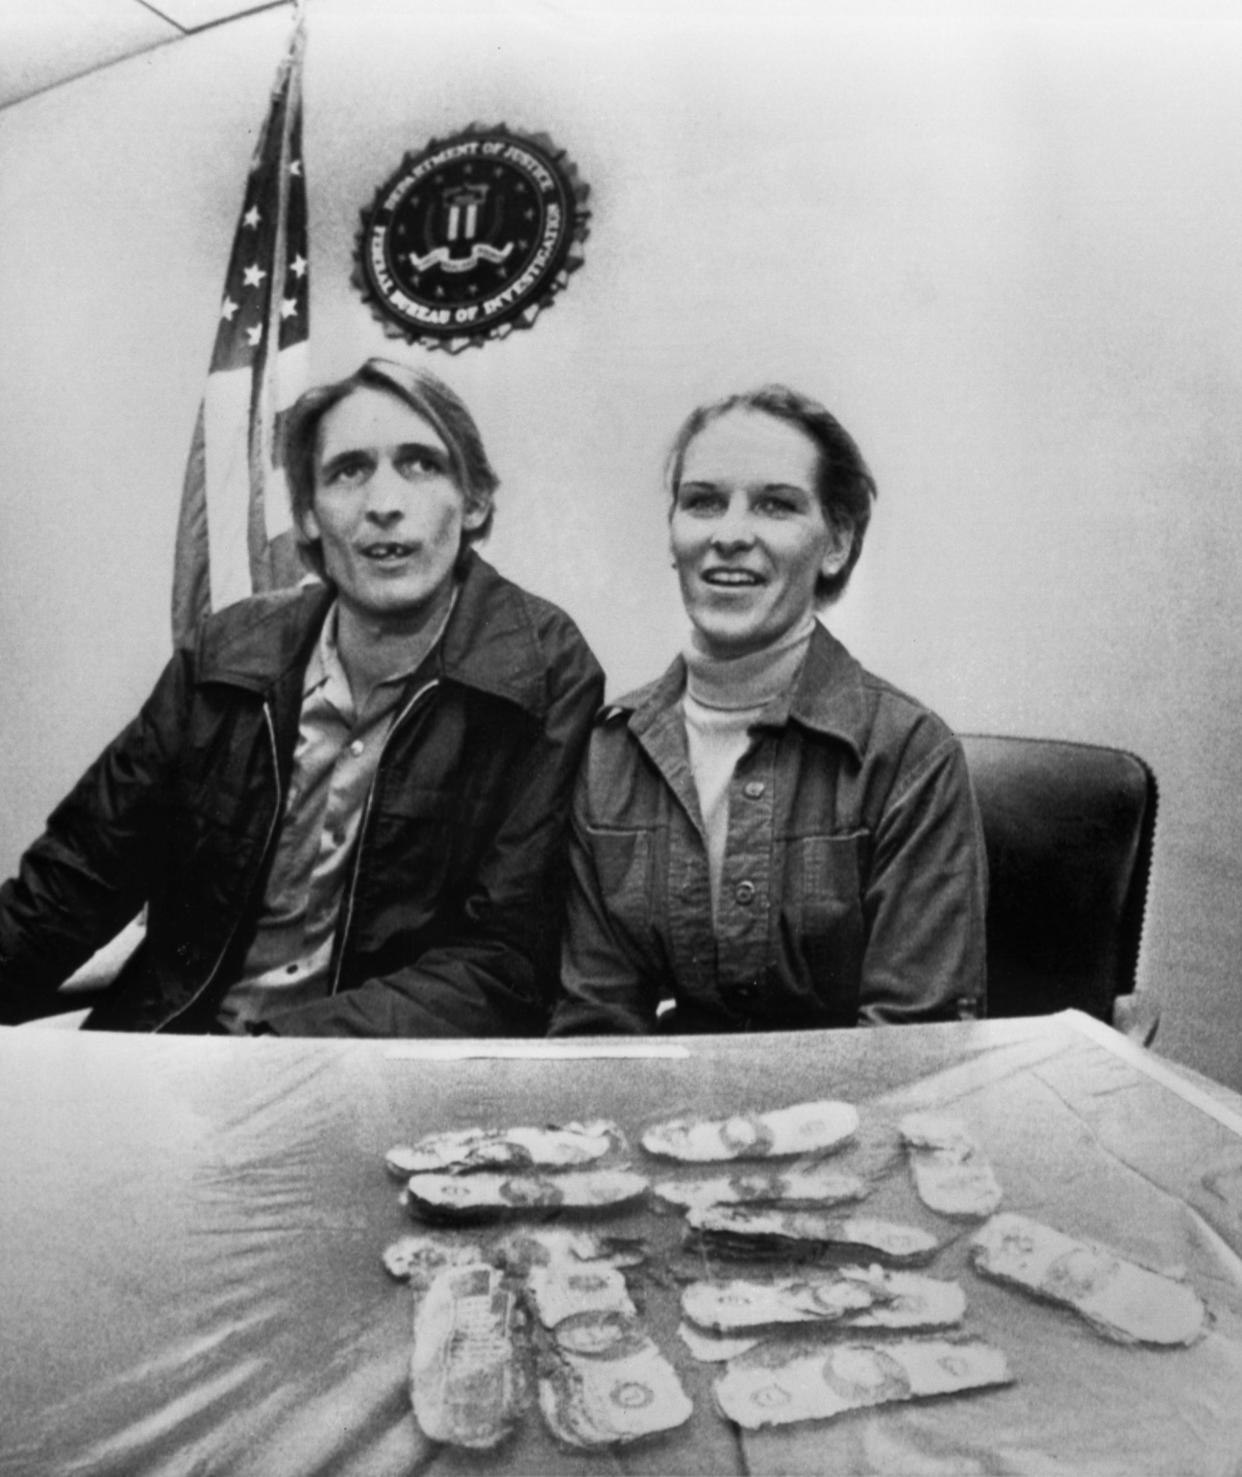 Howard and Patricia Ingram of Vancouver, Wash., sit with several thousand dollars the FBI announced was paid to legendary hijacker D.B. Cooper, on Tuesday, Feb. 12, 1980 in Portland, Ore. The couple's son Brian found the money on a picnic on Sunday. (AP Photo)